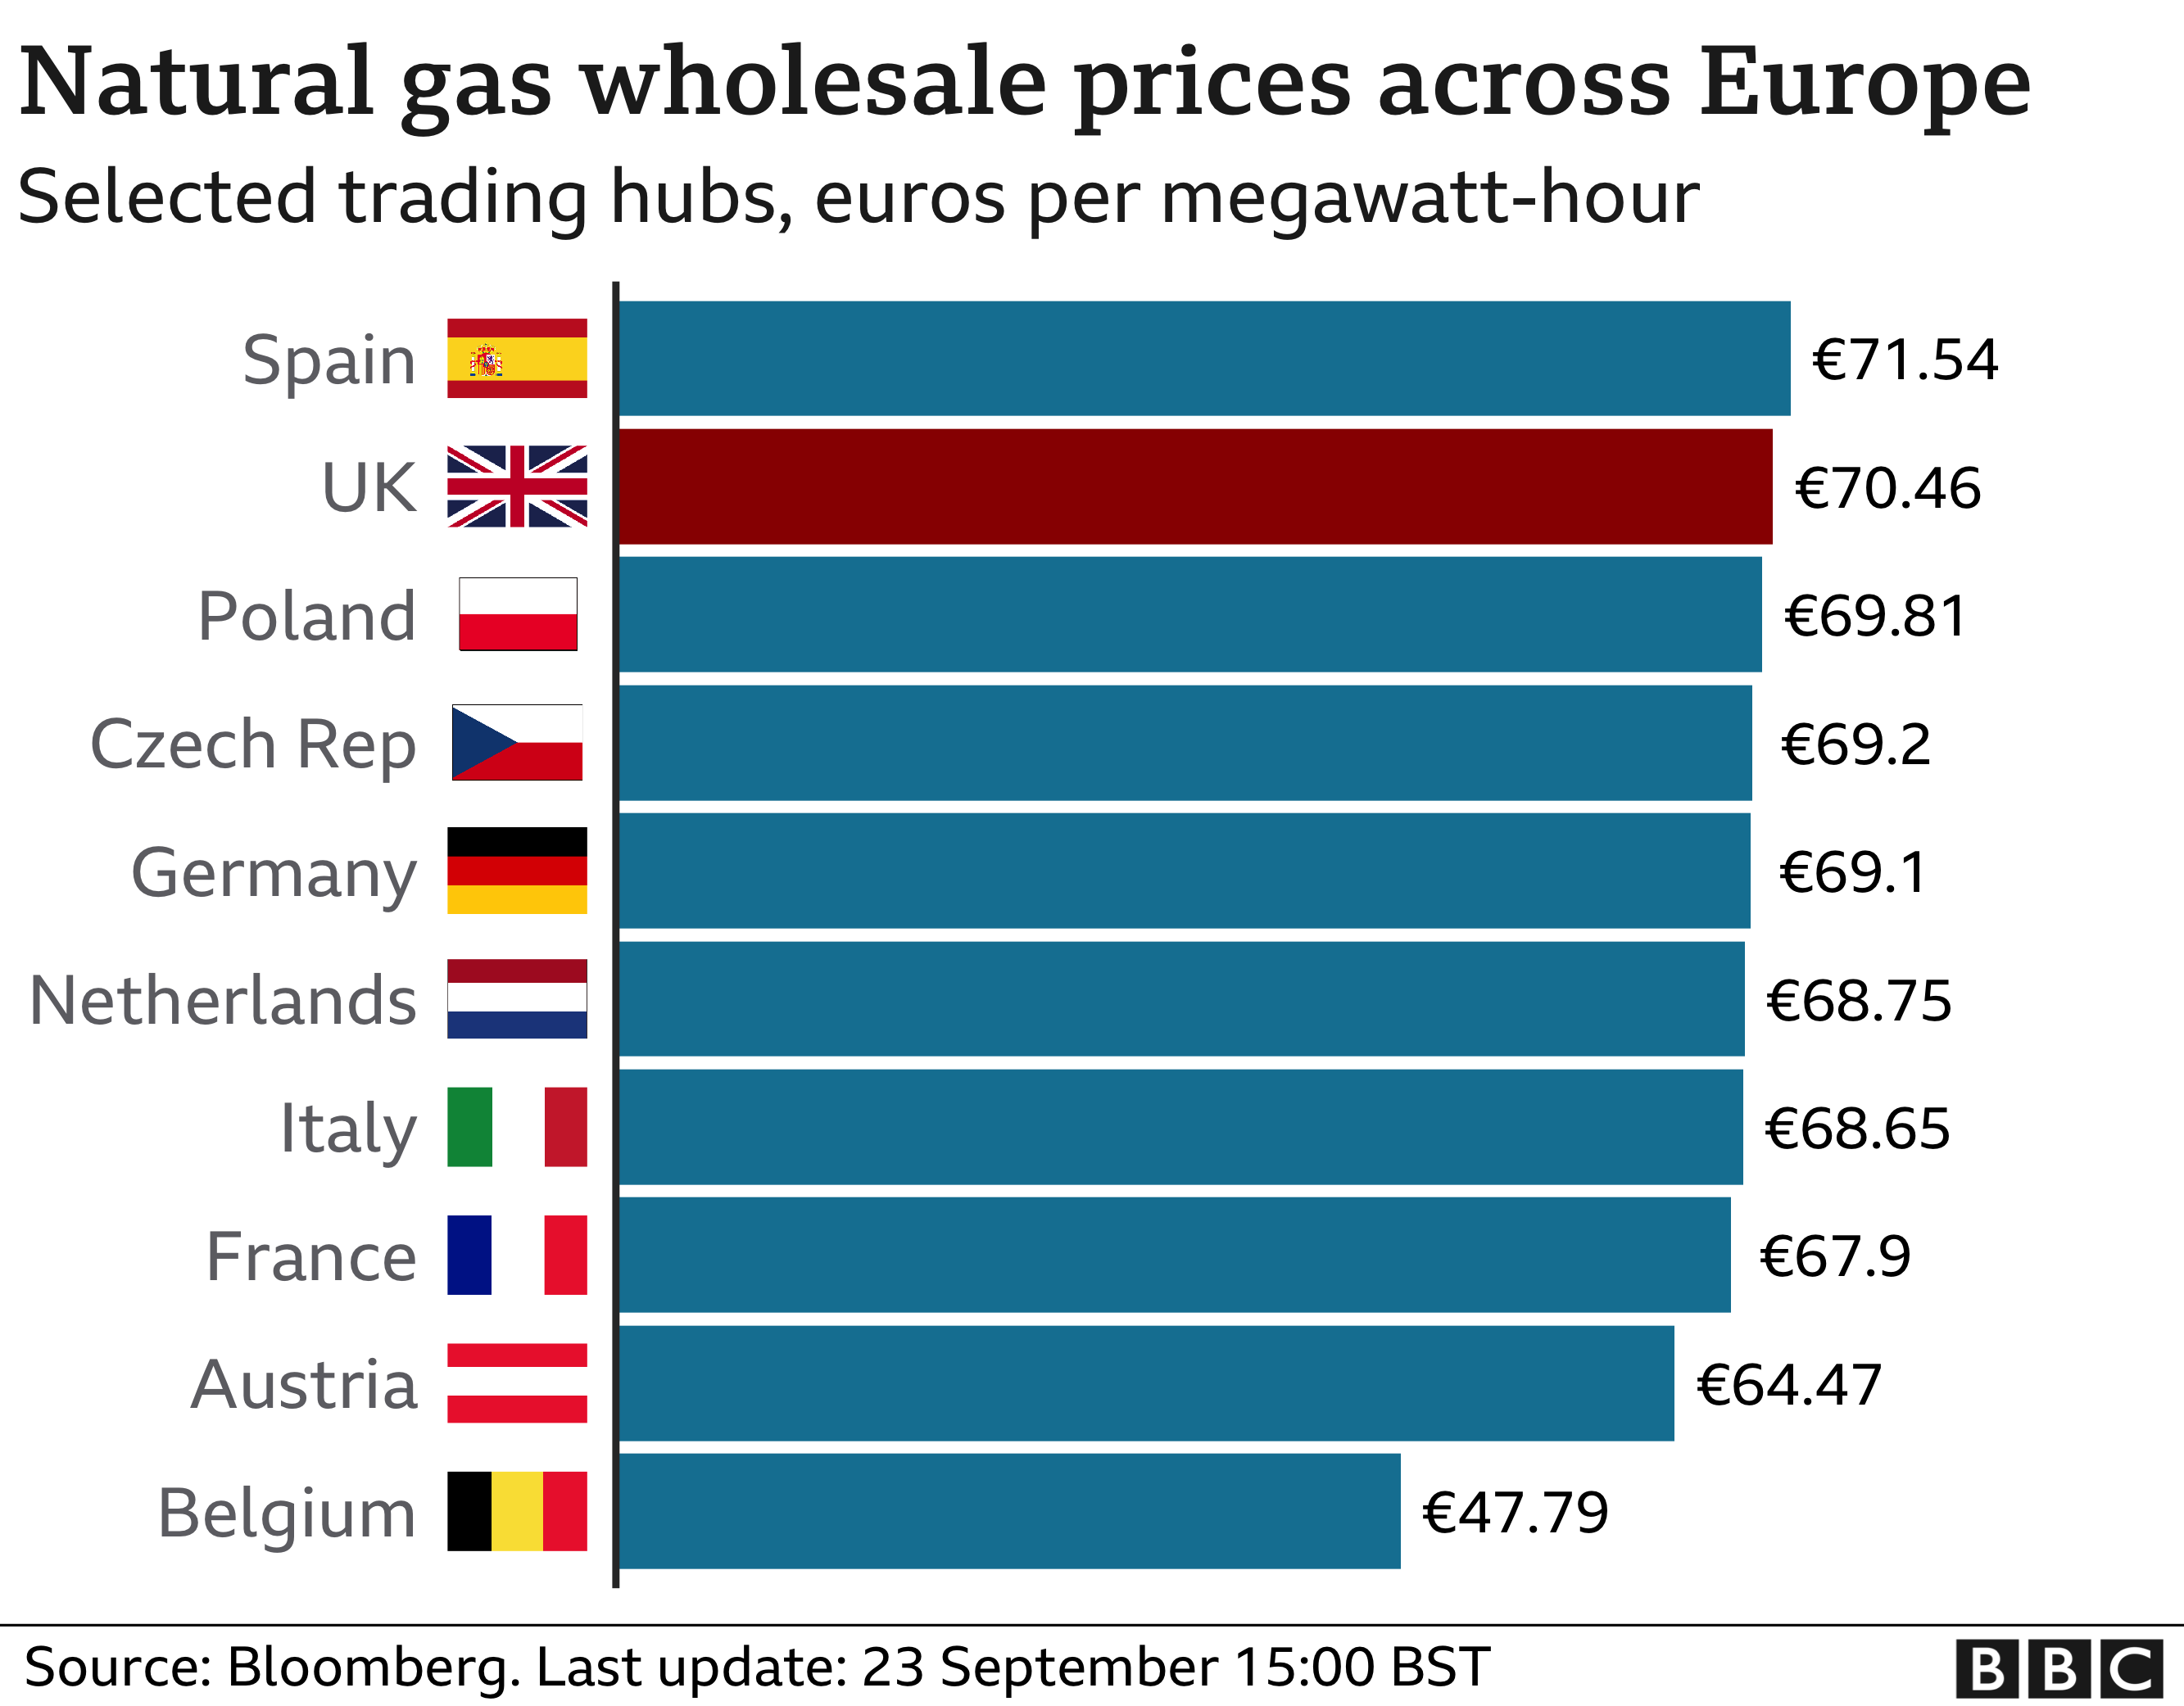 Natural gas prices across Europe